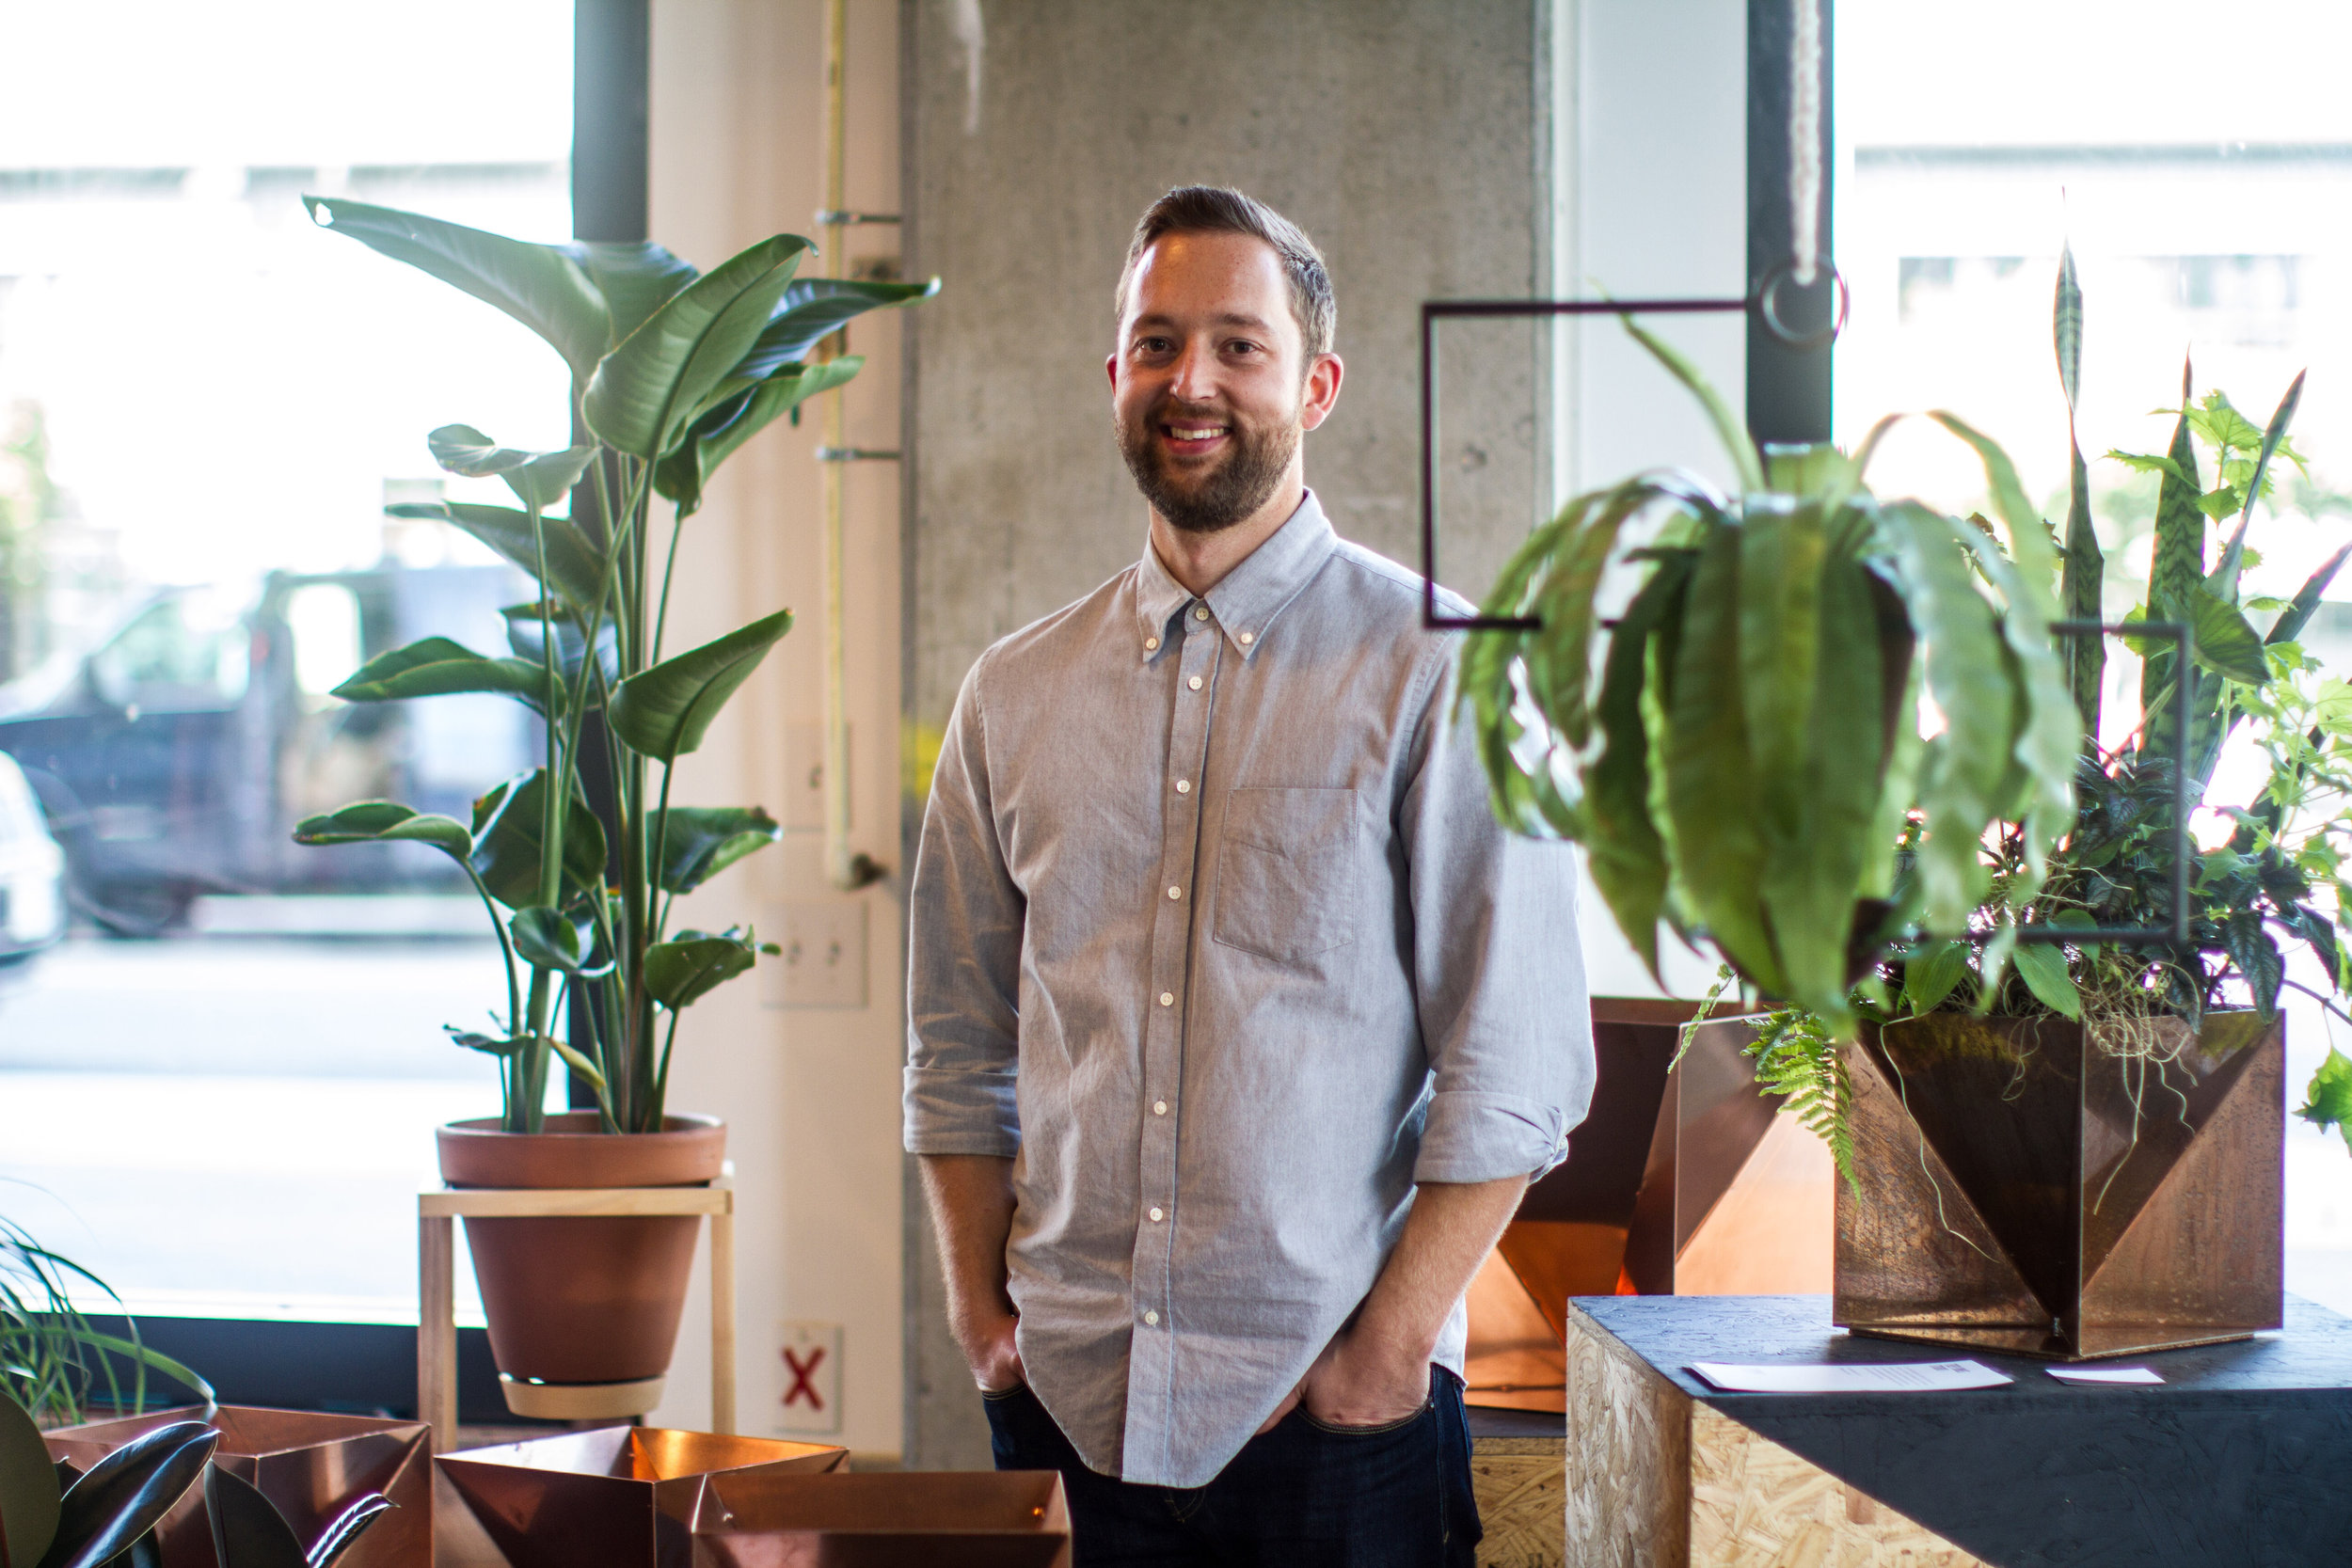 Trey Jones  Furniture Designer I design and make furniture and objects for the home.    What's inspiring you lately?   Road trips and plants.   www.TreyJonesStudio.com  IG  @treyjones_studio